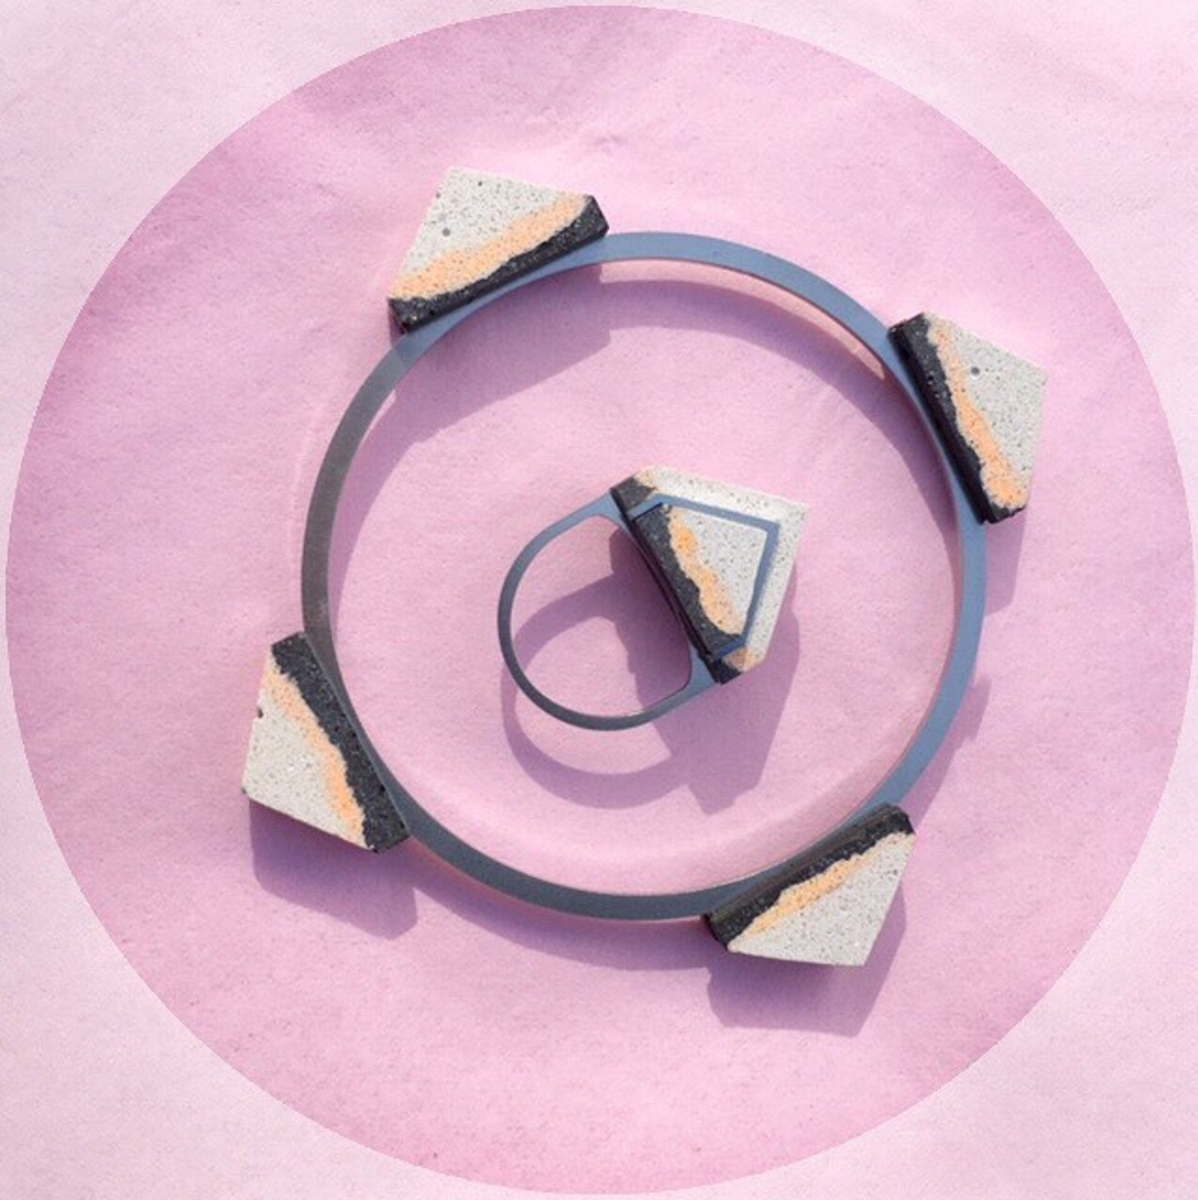 Hand mixed and dyed jesmonite with stainless steel from Hackney based Promises Promises. Bangle £44 and ring £36.